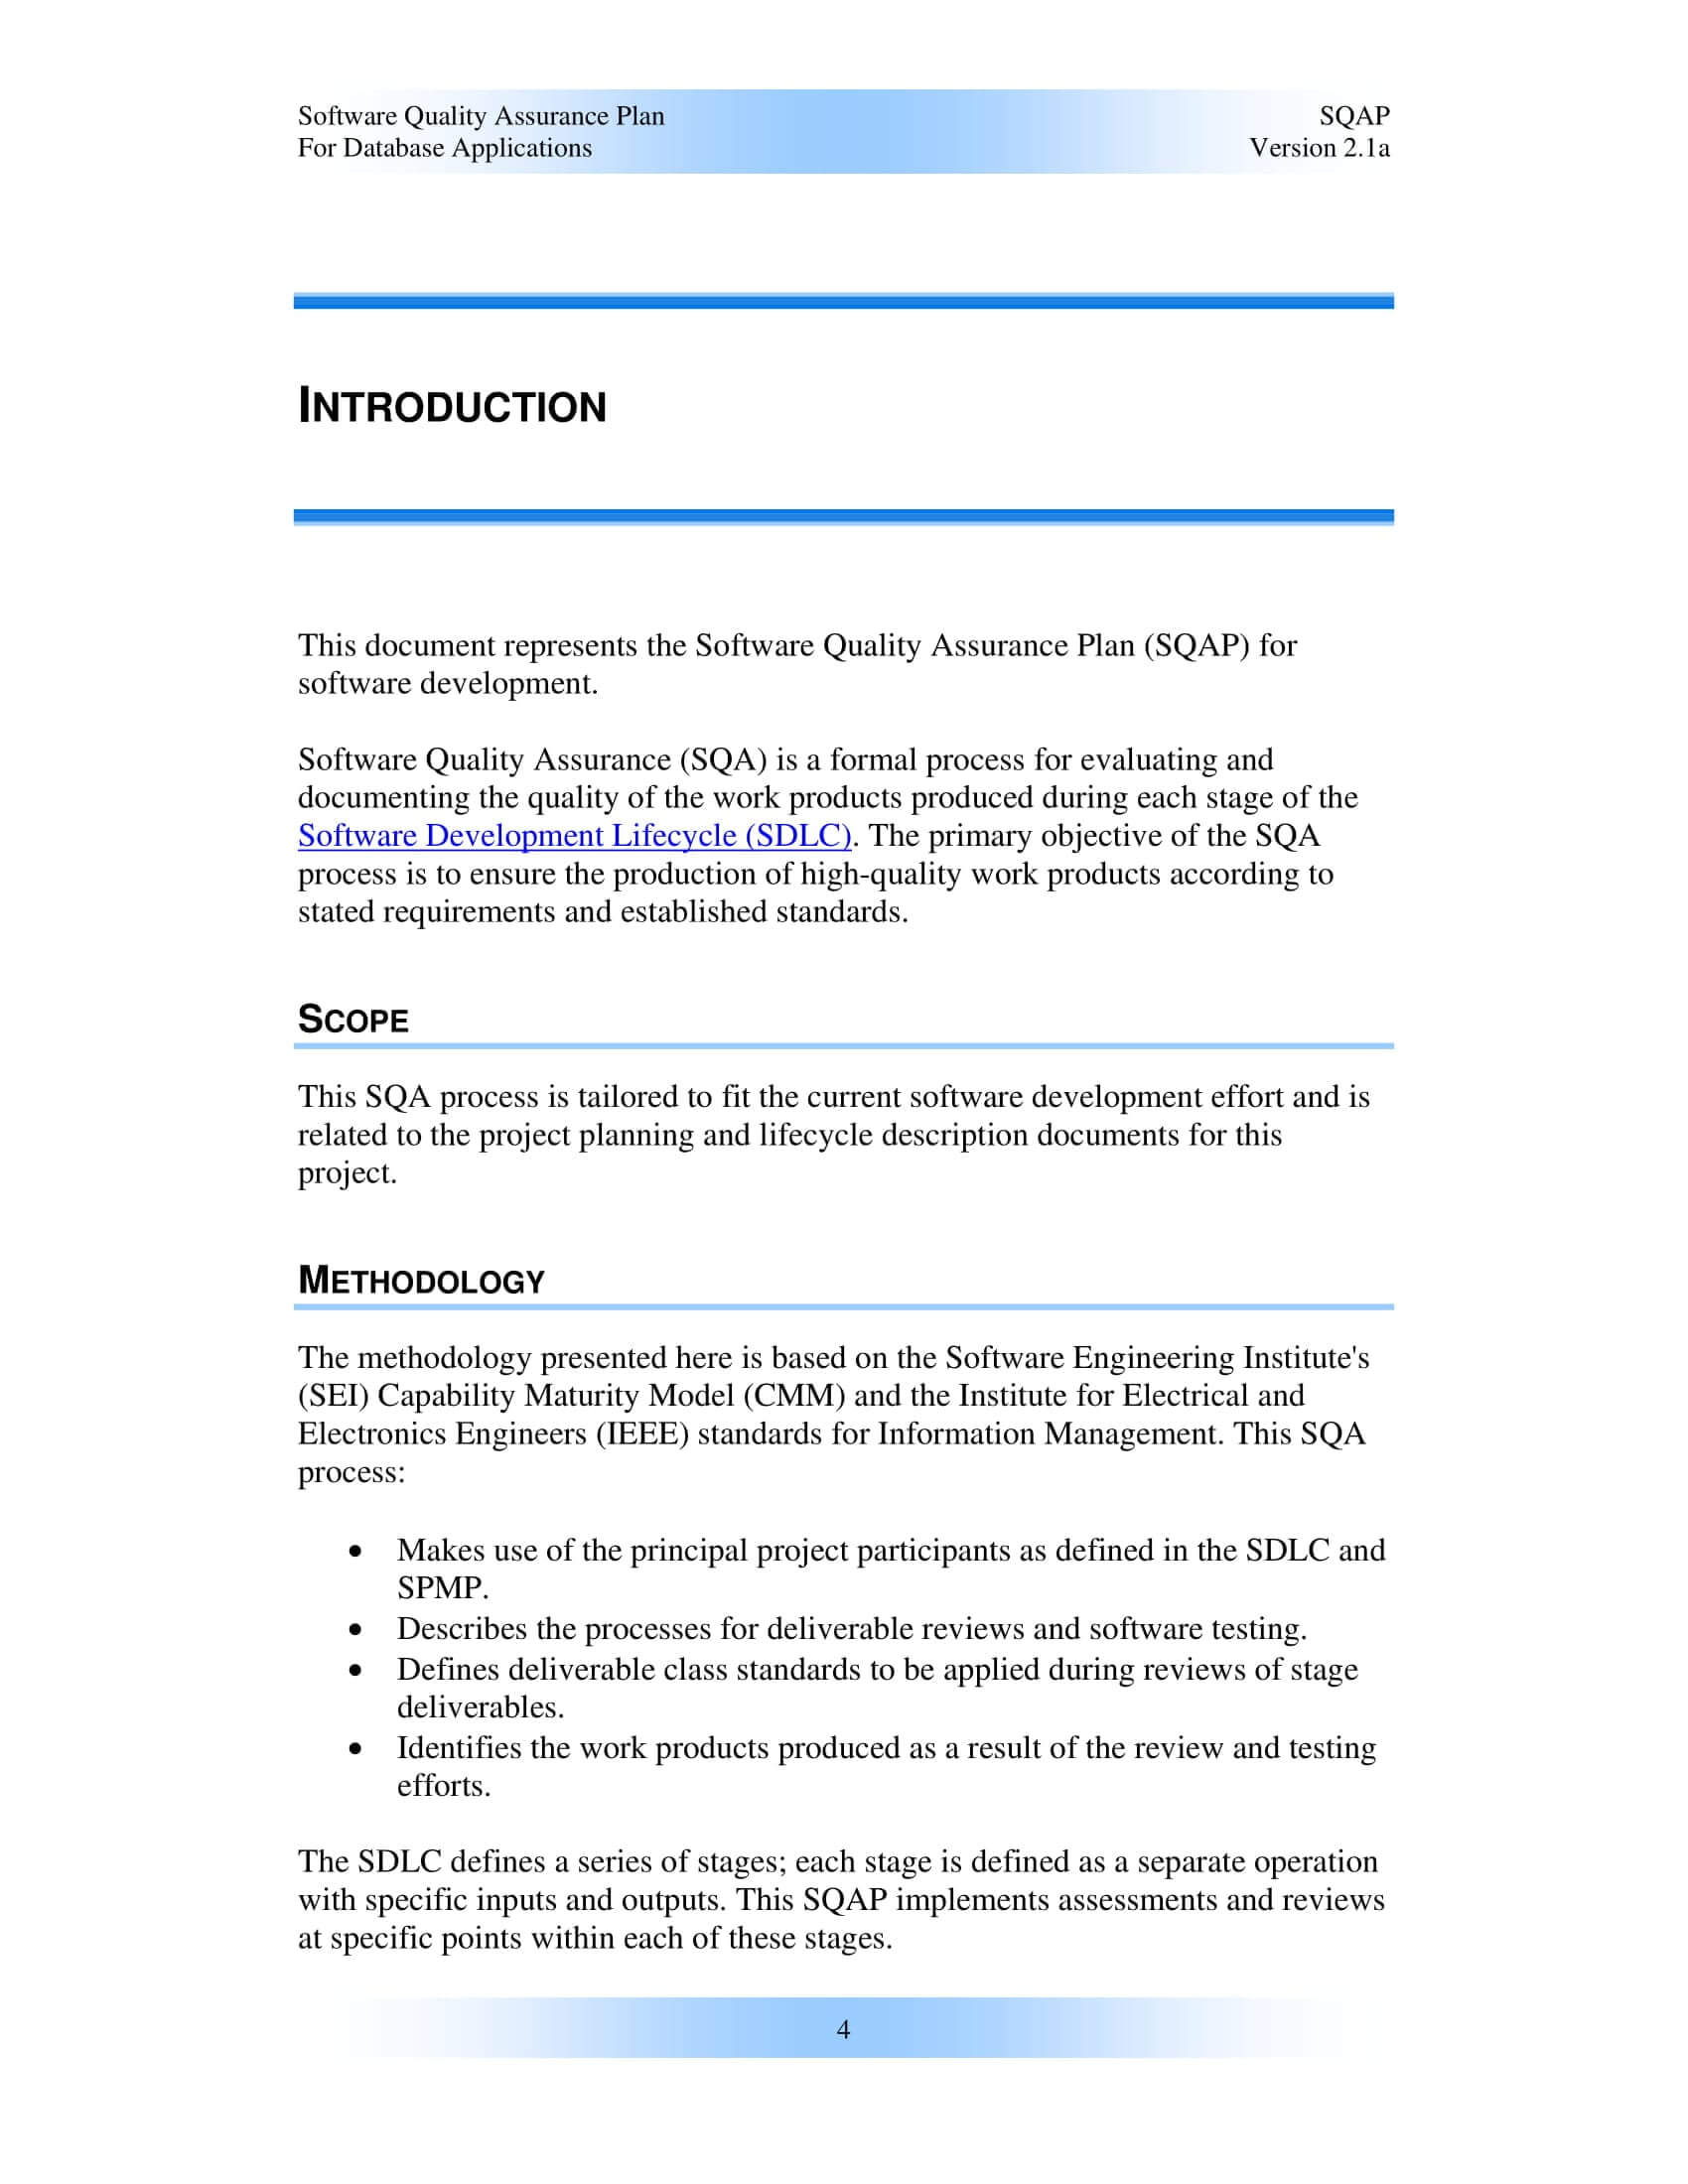 9+ Software Quality Assurance Plan Examples - Pdf | Examples For Software Quality Assurance Report Template